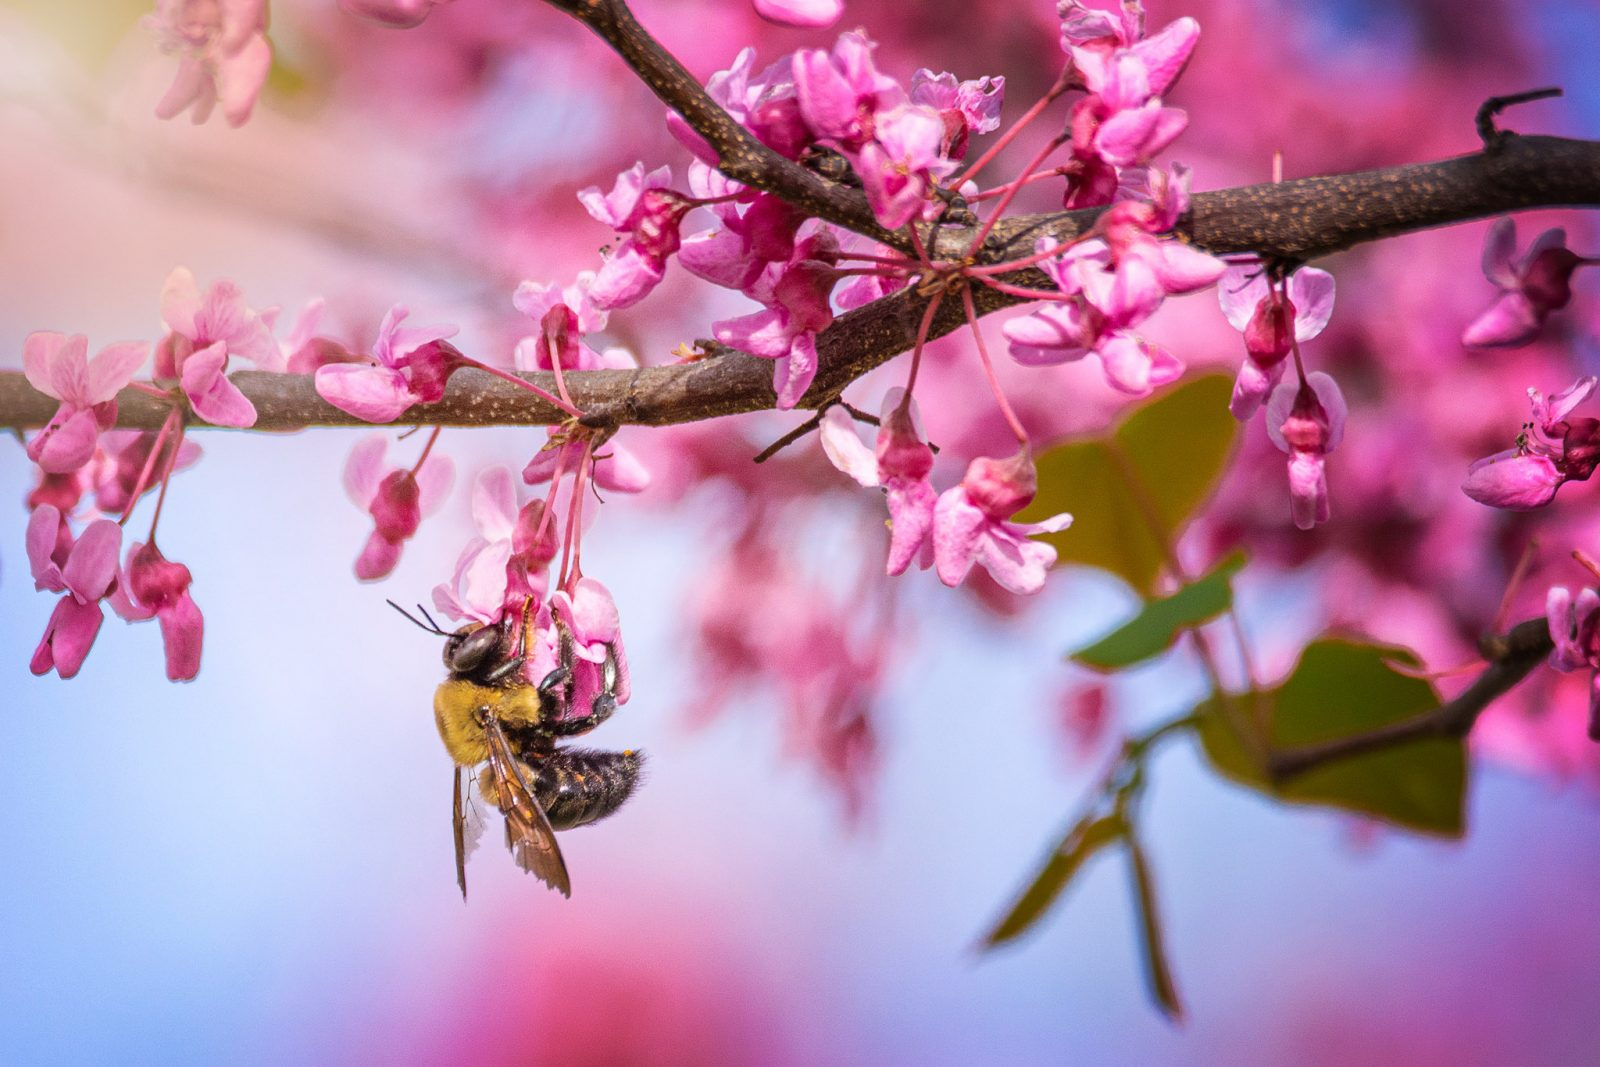 The Bee and the Redbud